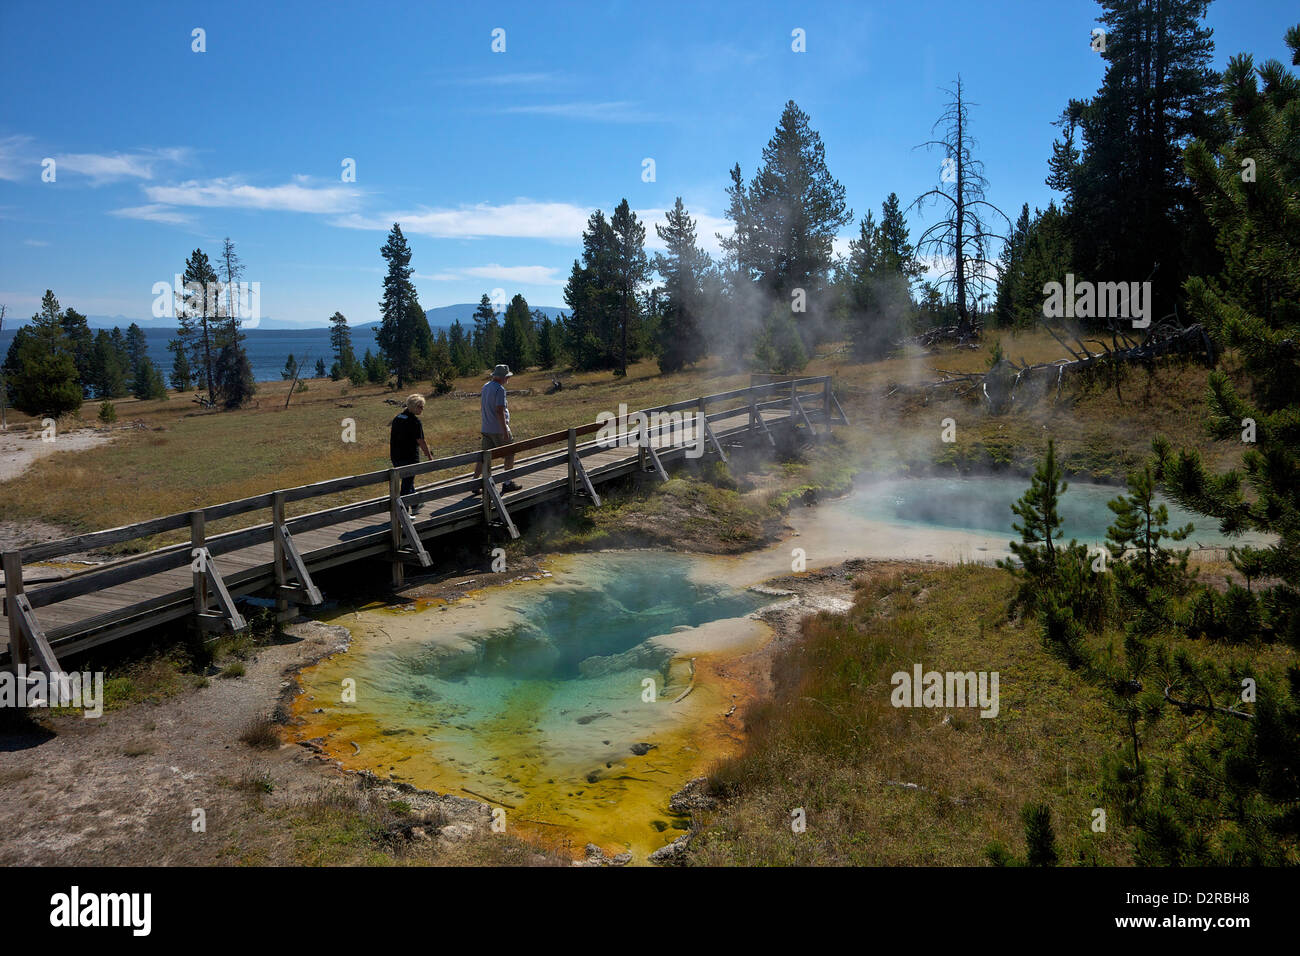 Tourists looking at Seismograph and Bluebell pools, West Thumb Geyser Basin, Yellowstone National Park, Wyoming, - Stock Image